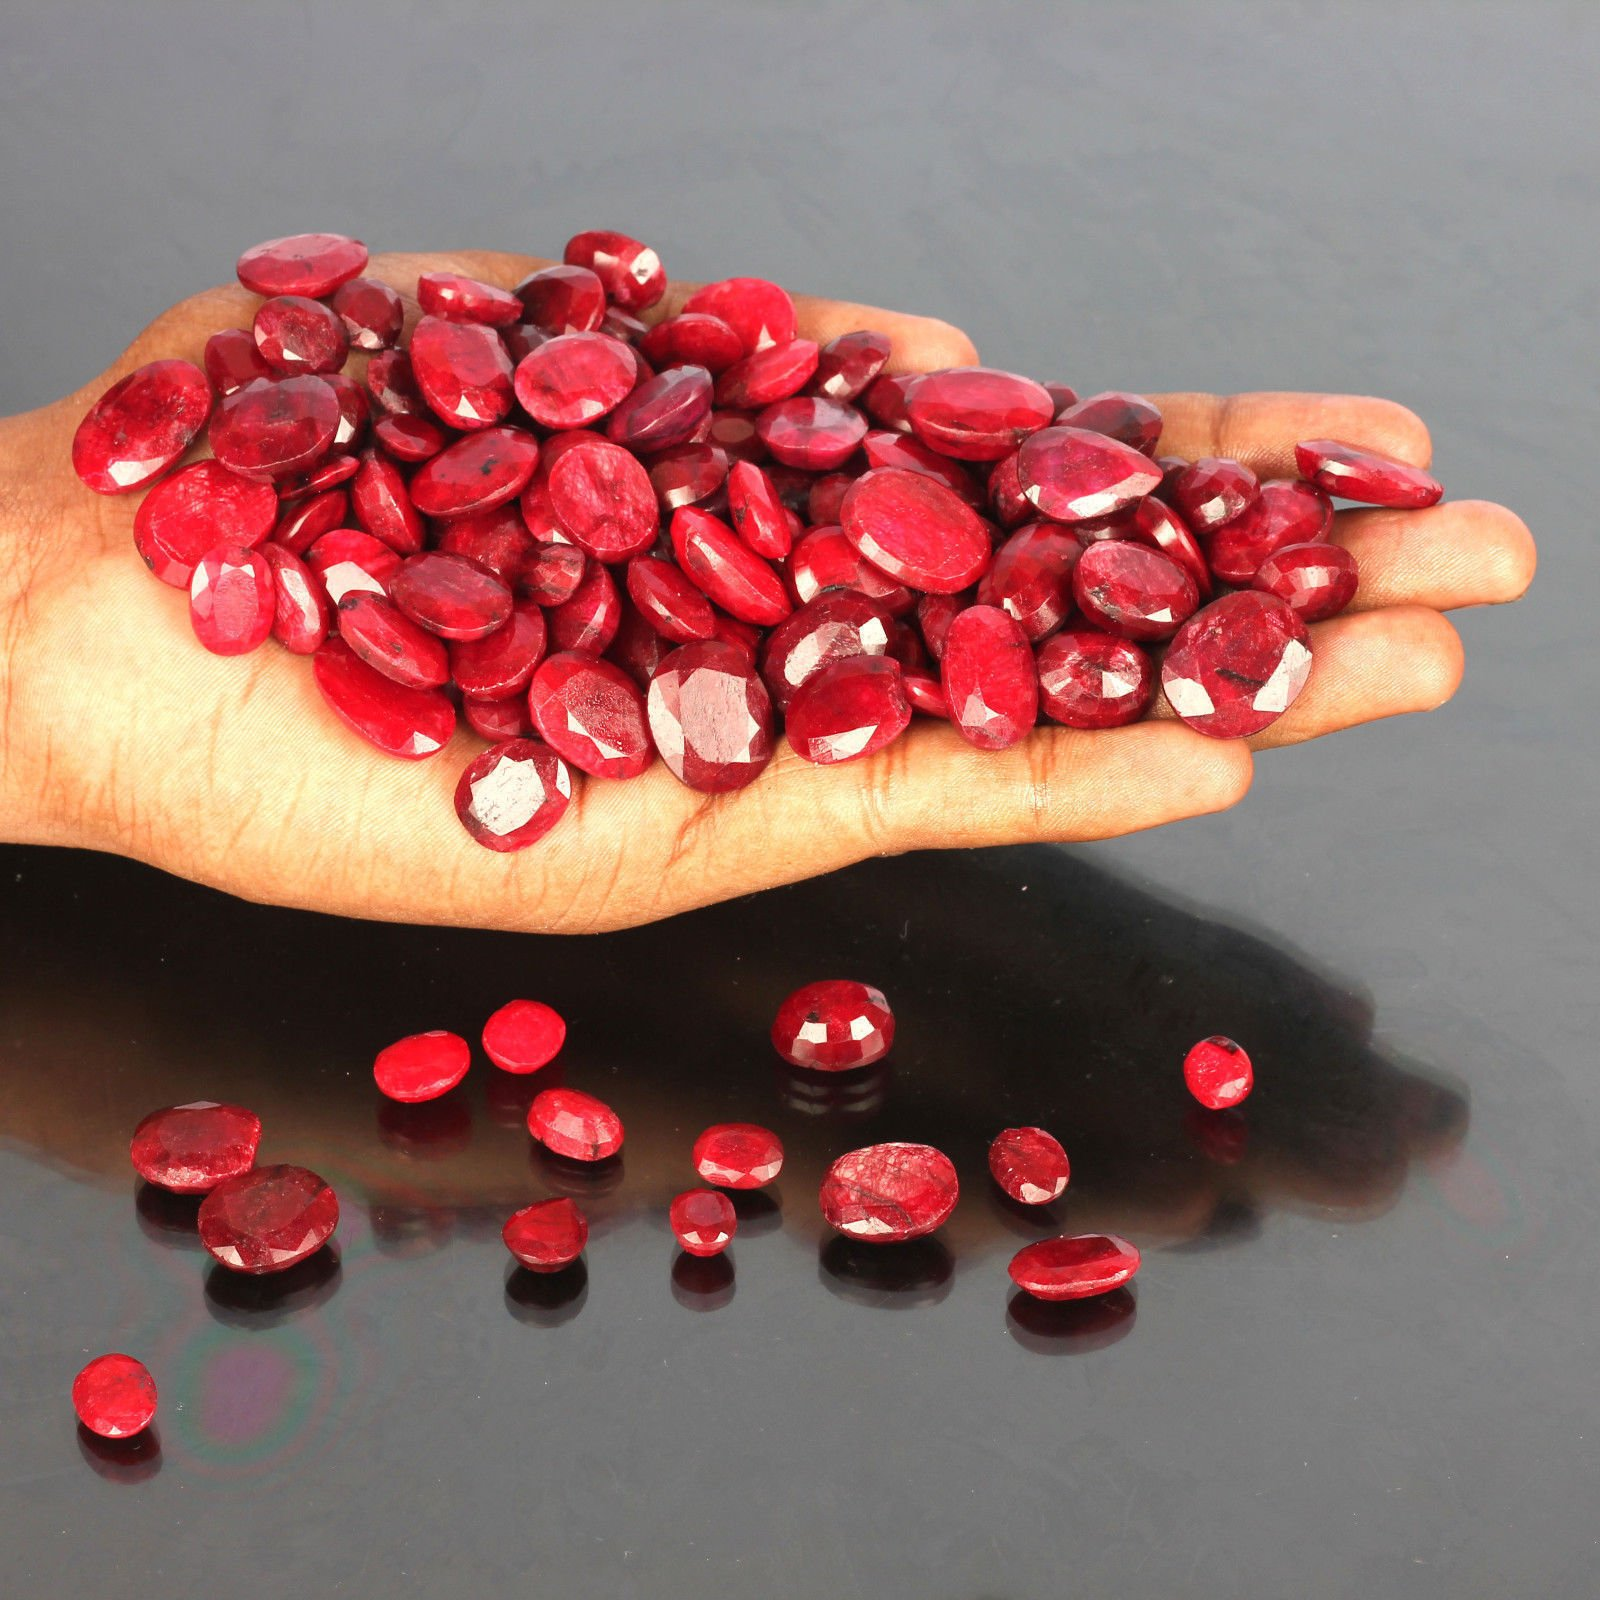 Best Offer ! 100 Ct./7 Pcs Ring Size Gorgeous African Pigeon Blood Red Ruby Loose Gemstones Lot Ruby July Birthstone